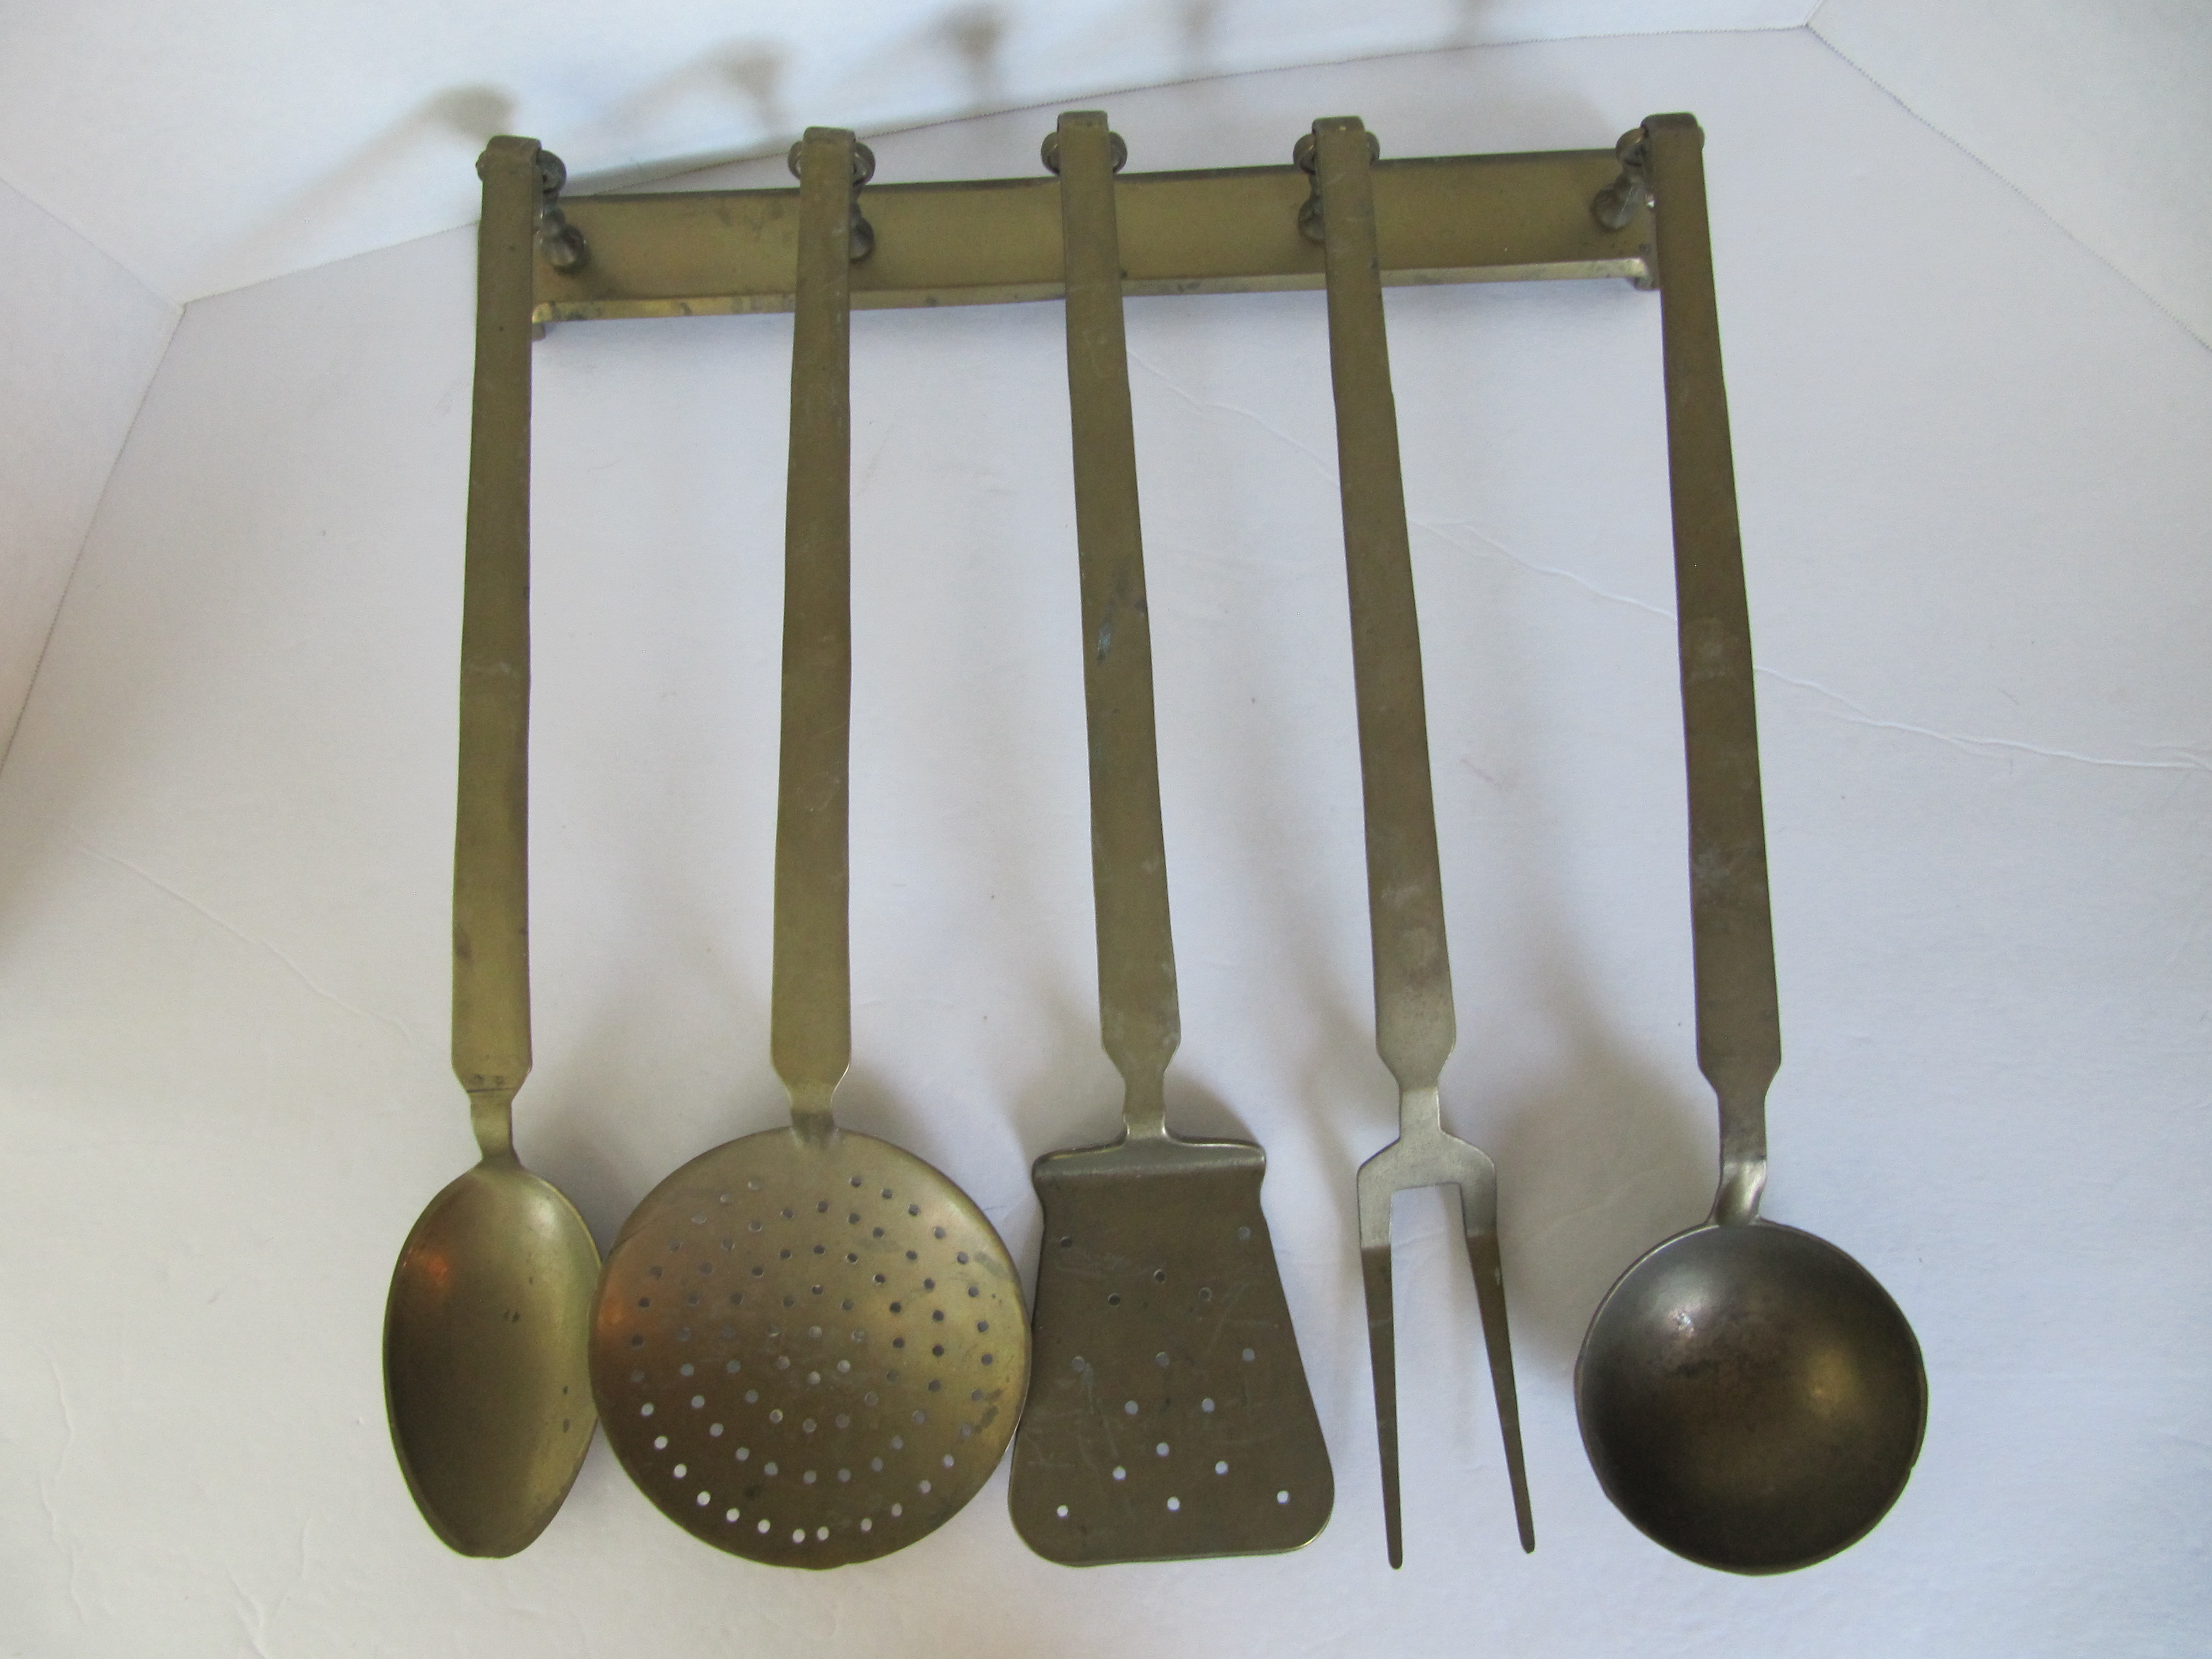 Superb Vintage Hanging Brass Utensils   Set Of 5   Image 2 Of 7